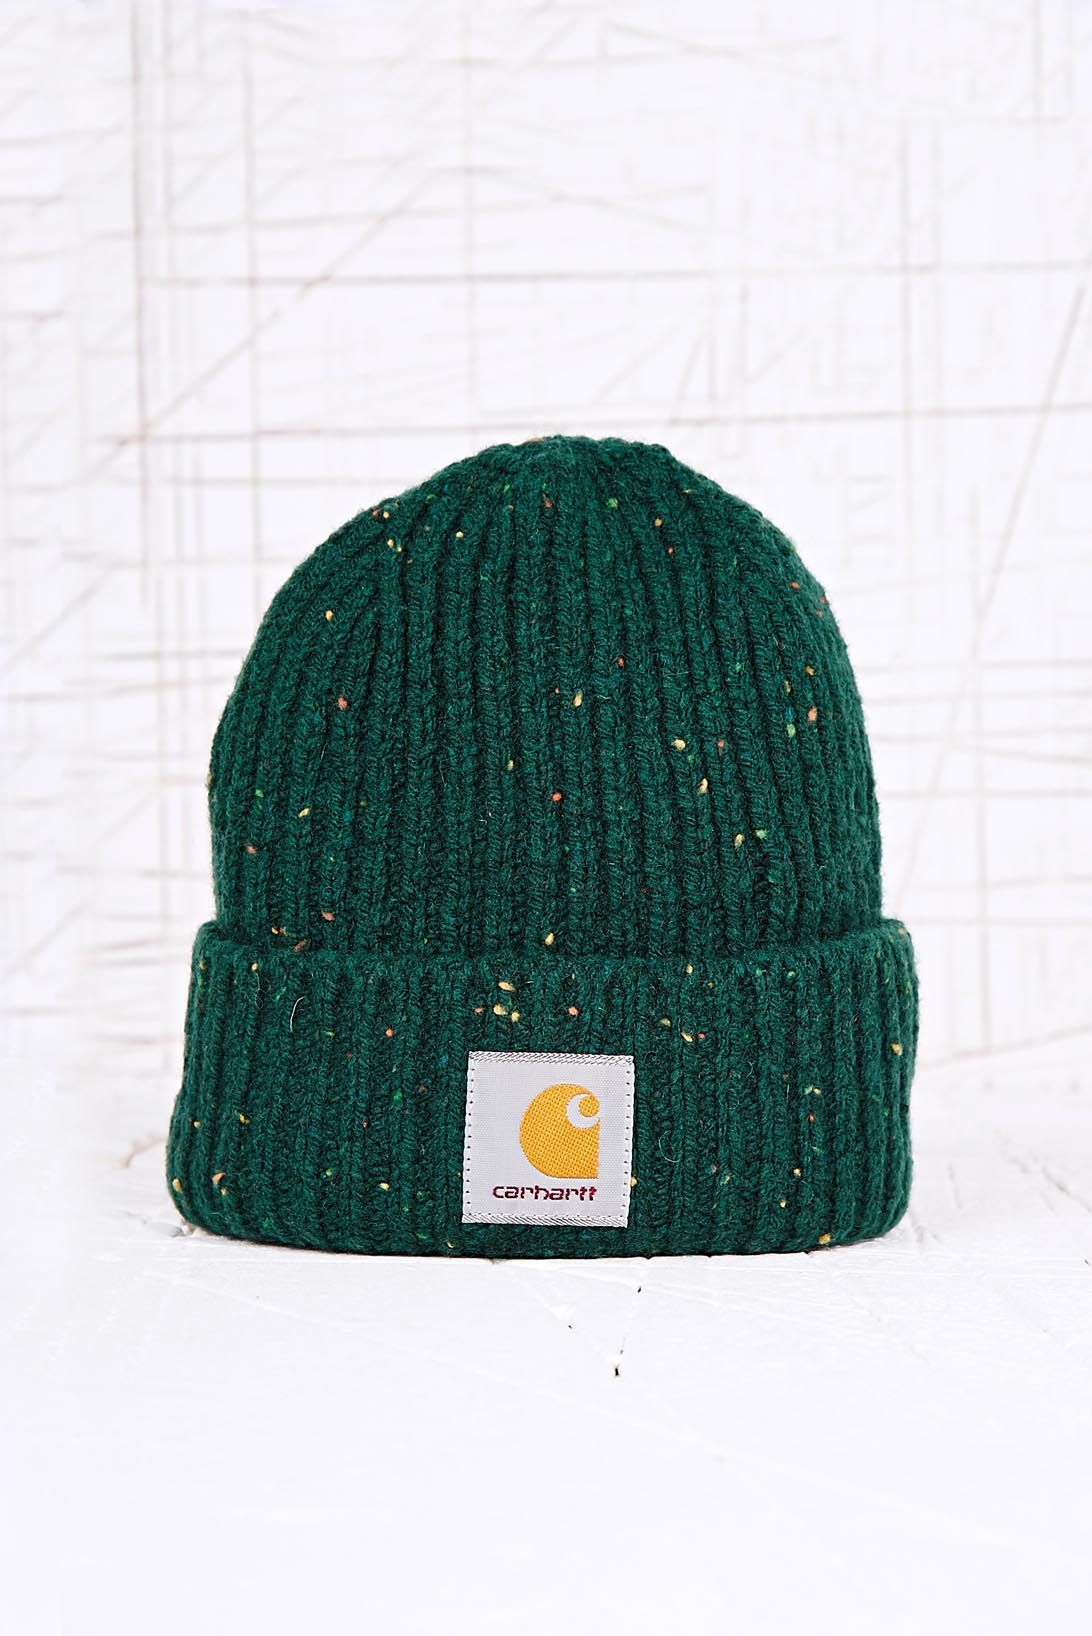 Carhartt Anglistic Beanie Hat in Green in Green for Men  ba8e8aa8cea5